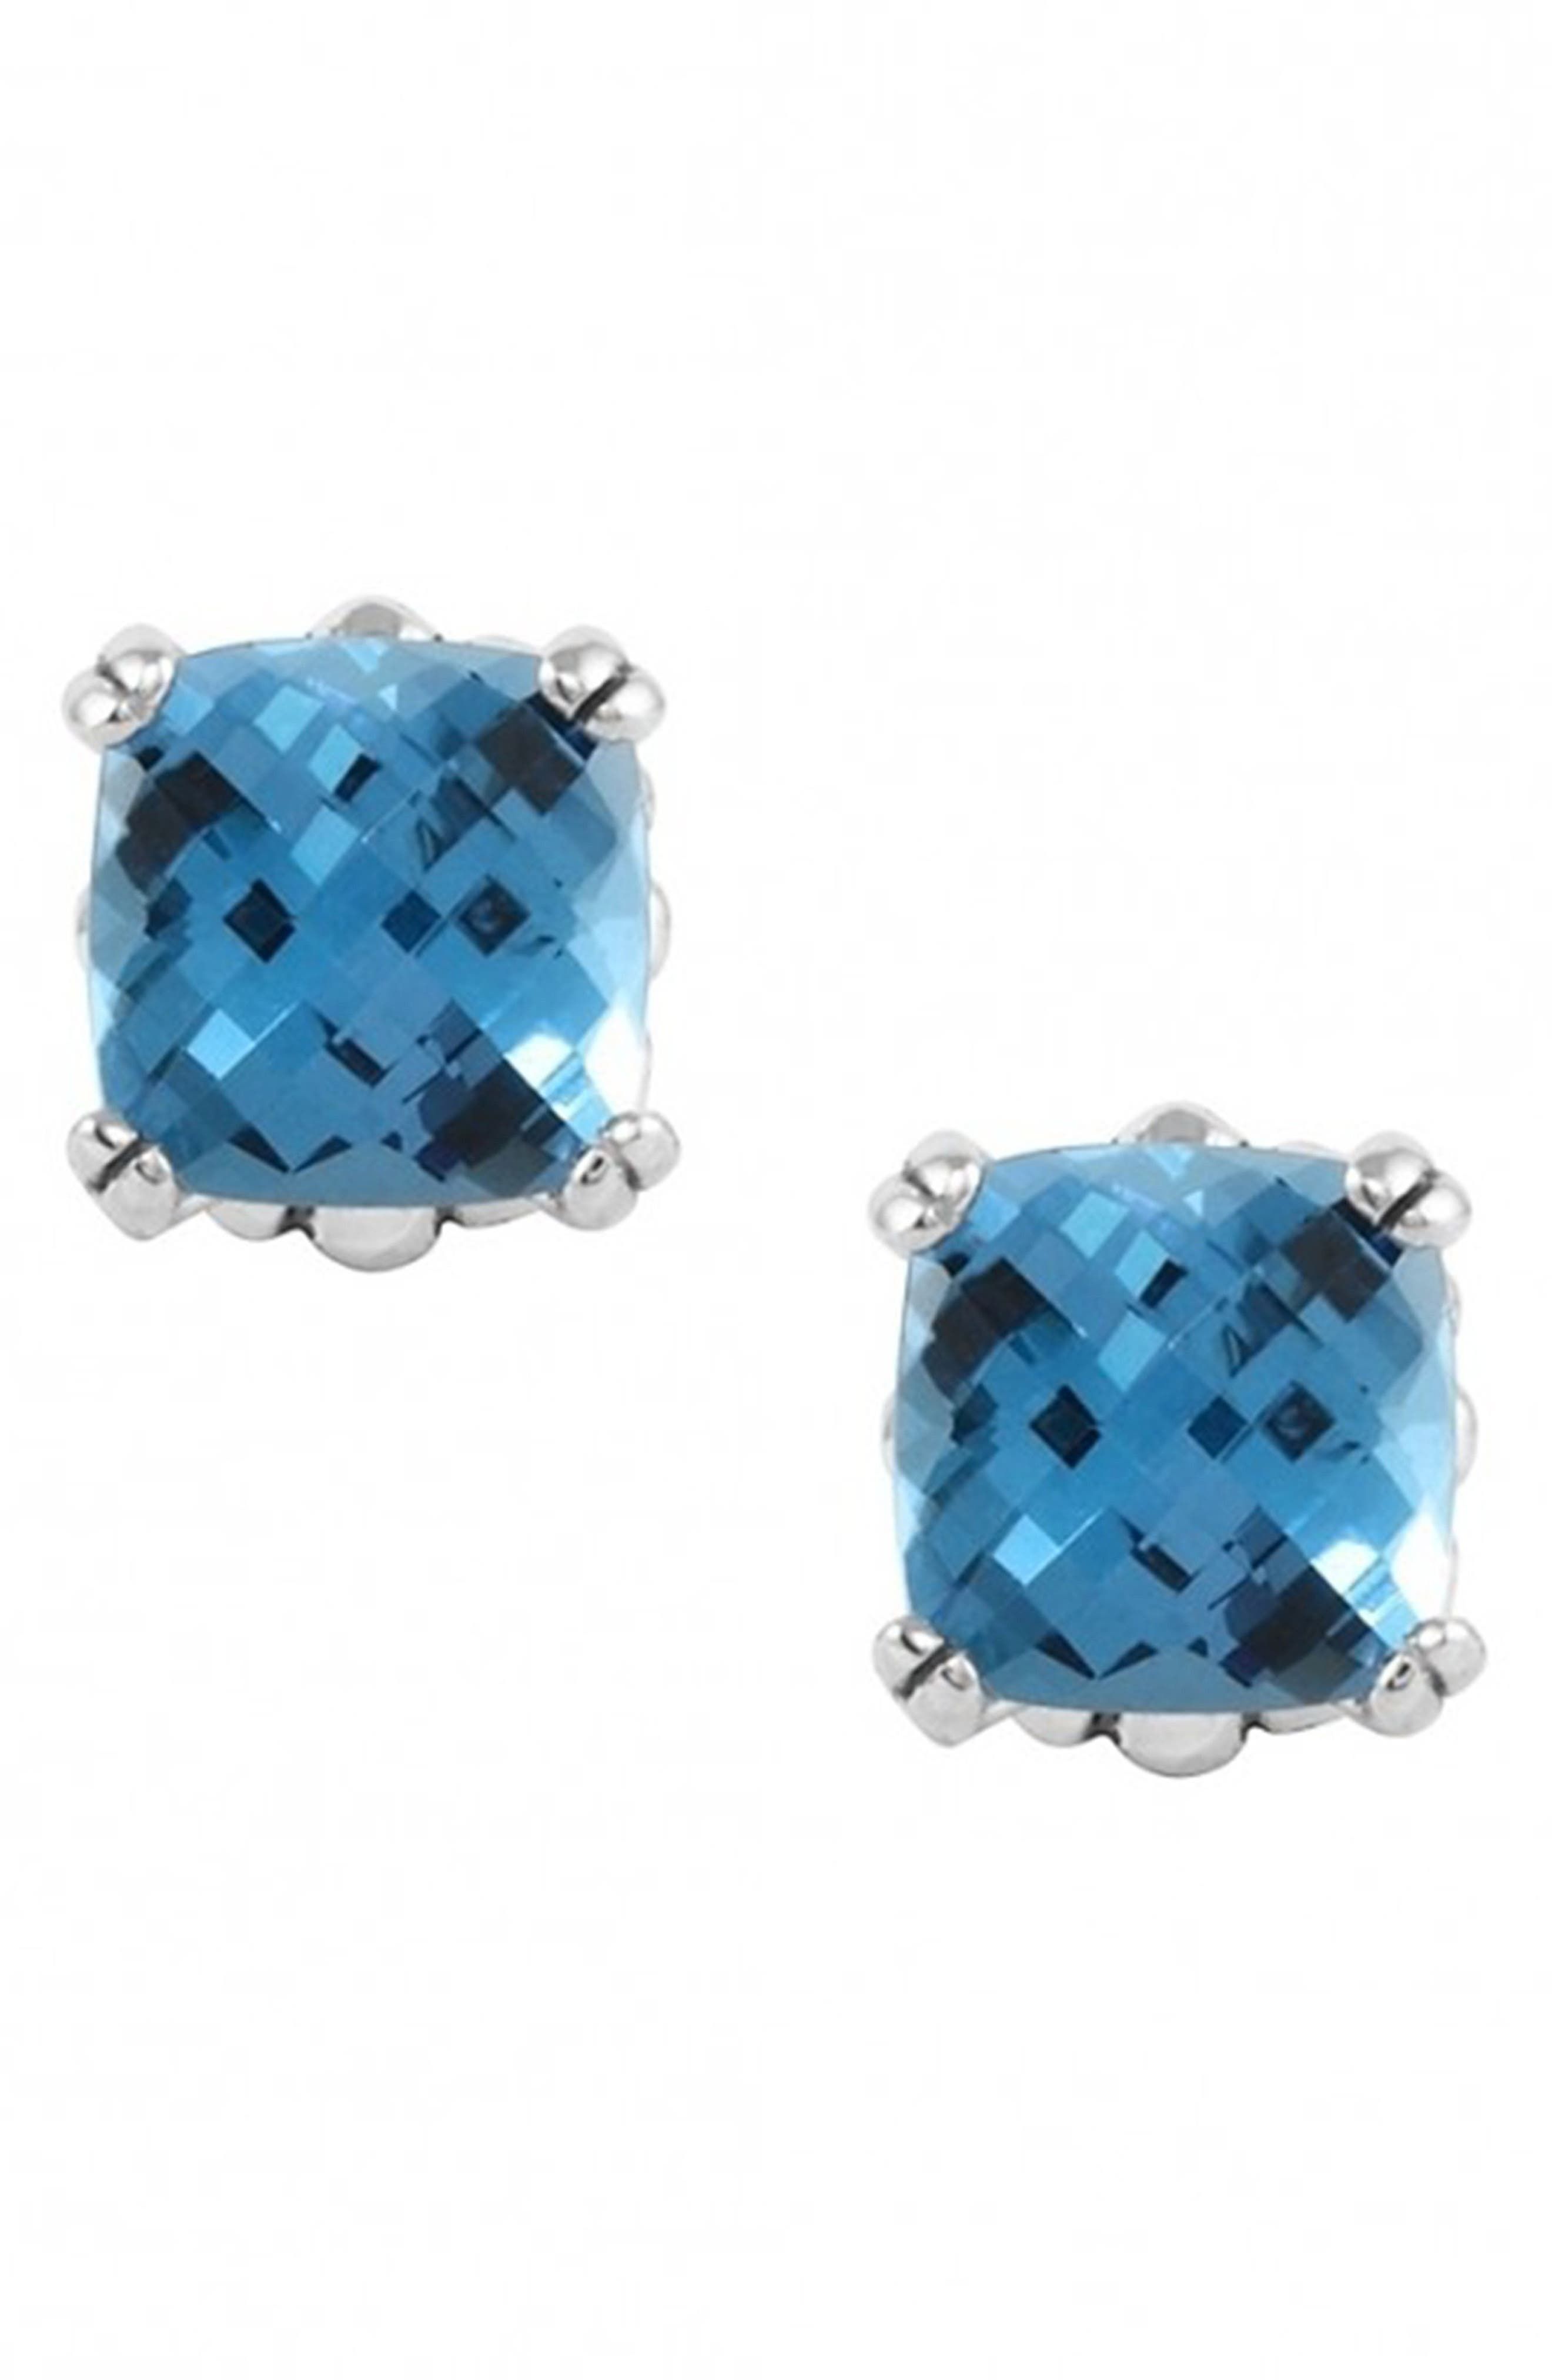 LAGOS 'Prism' Stud Earrings, Main, color, SILVER/ BLUE TOPAZ